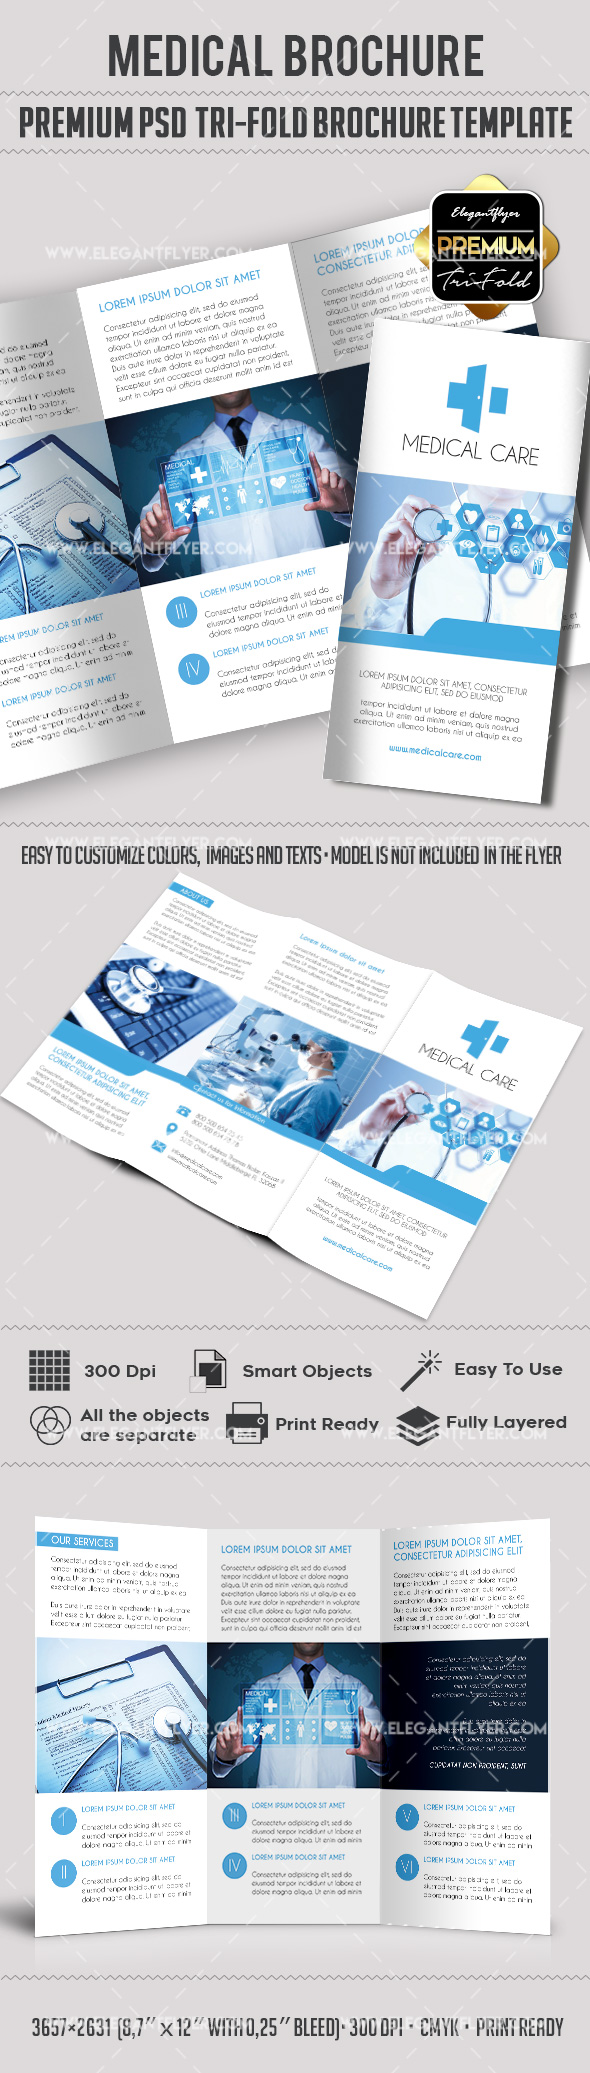 Brochure for immediate medical care by elegantflyer for 2 fold brochure template psd